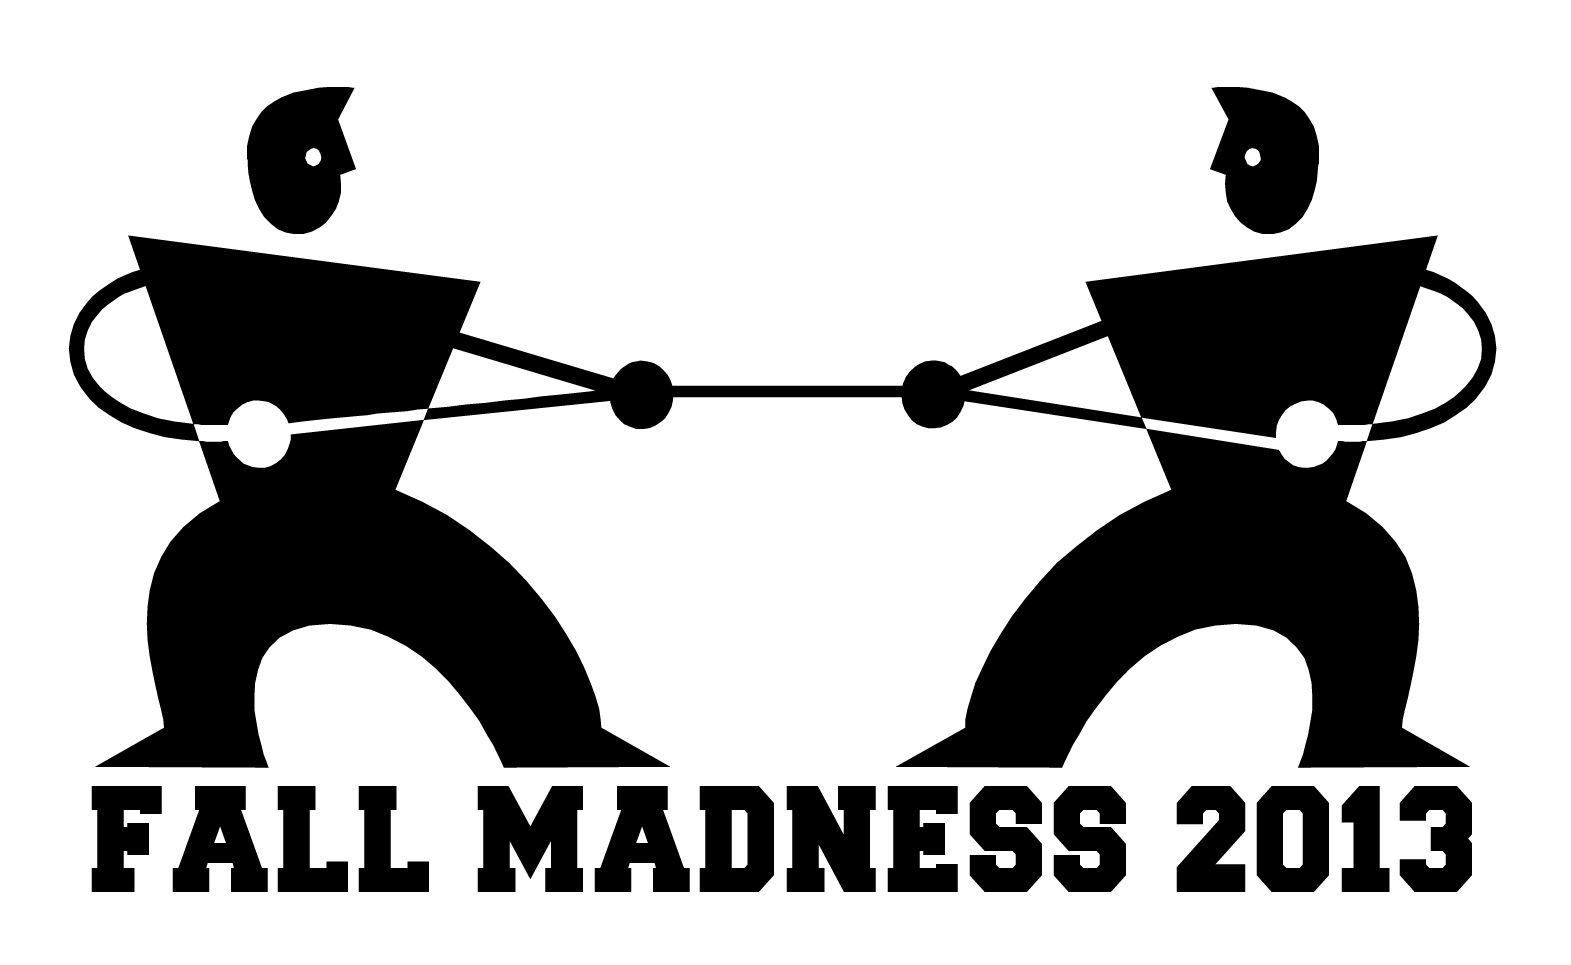 fall madness 2013. shirt